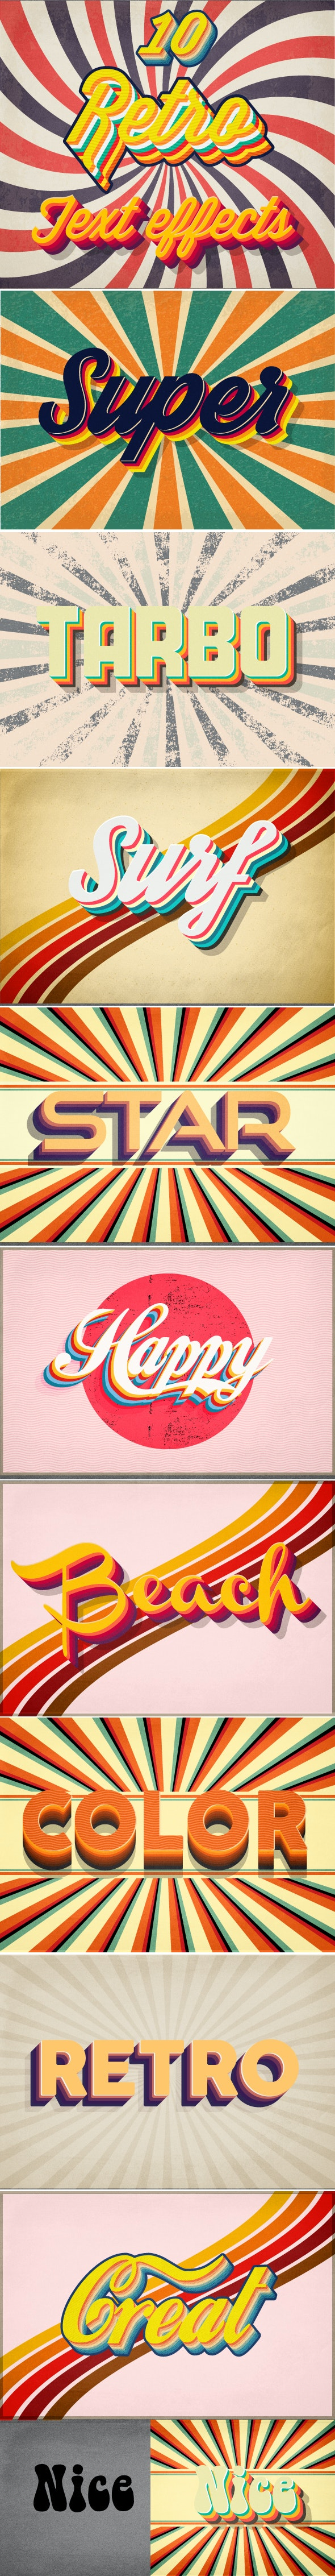 3D Retro Text Effects - Styles Illustrator